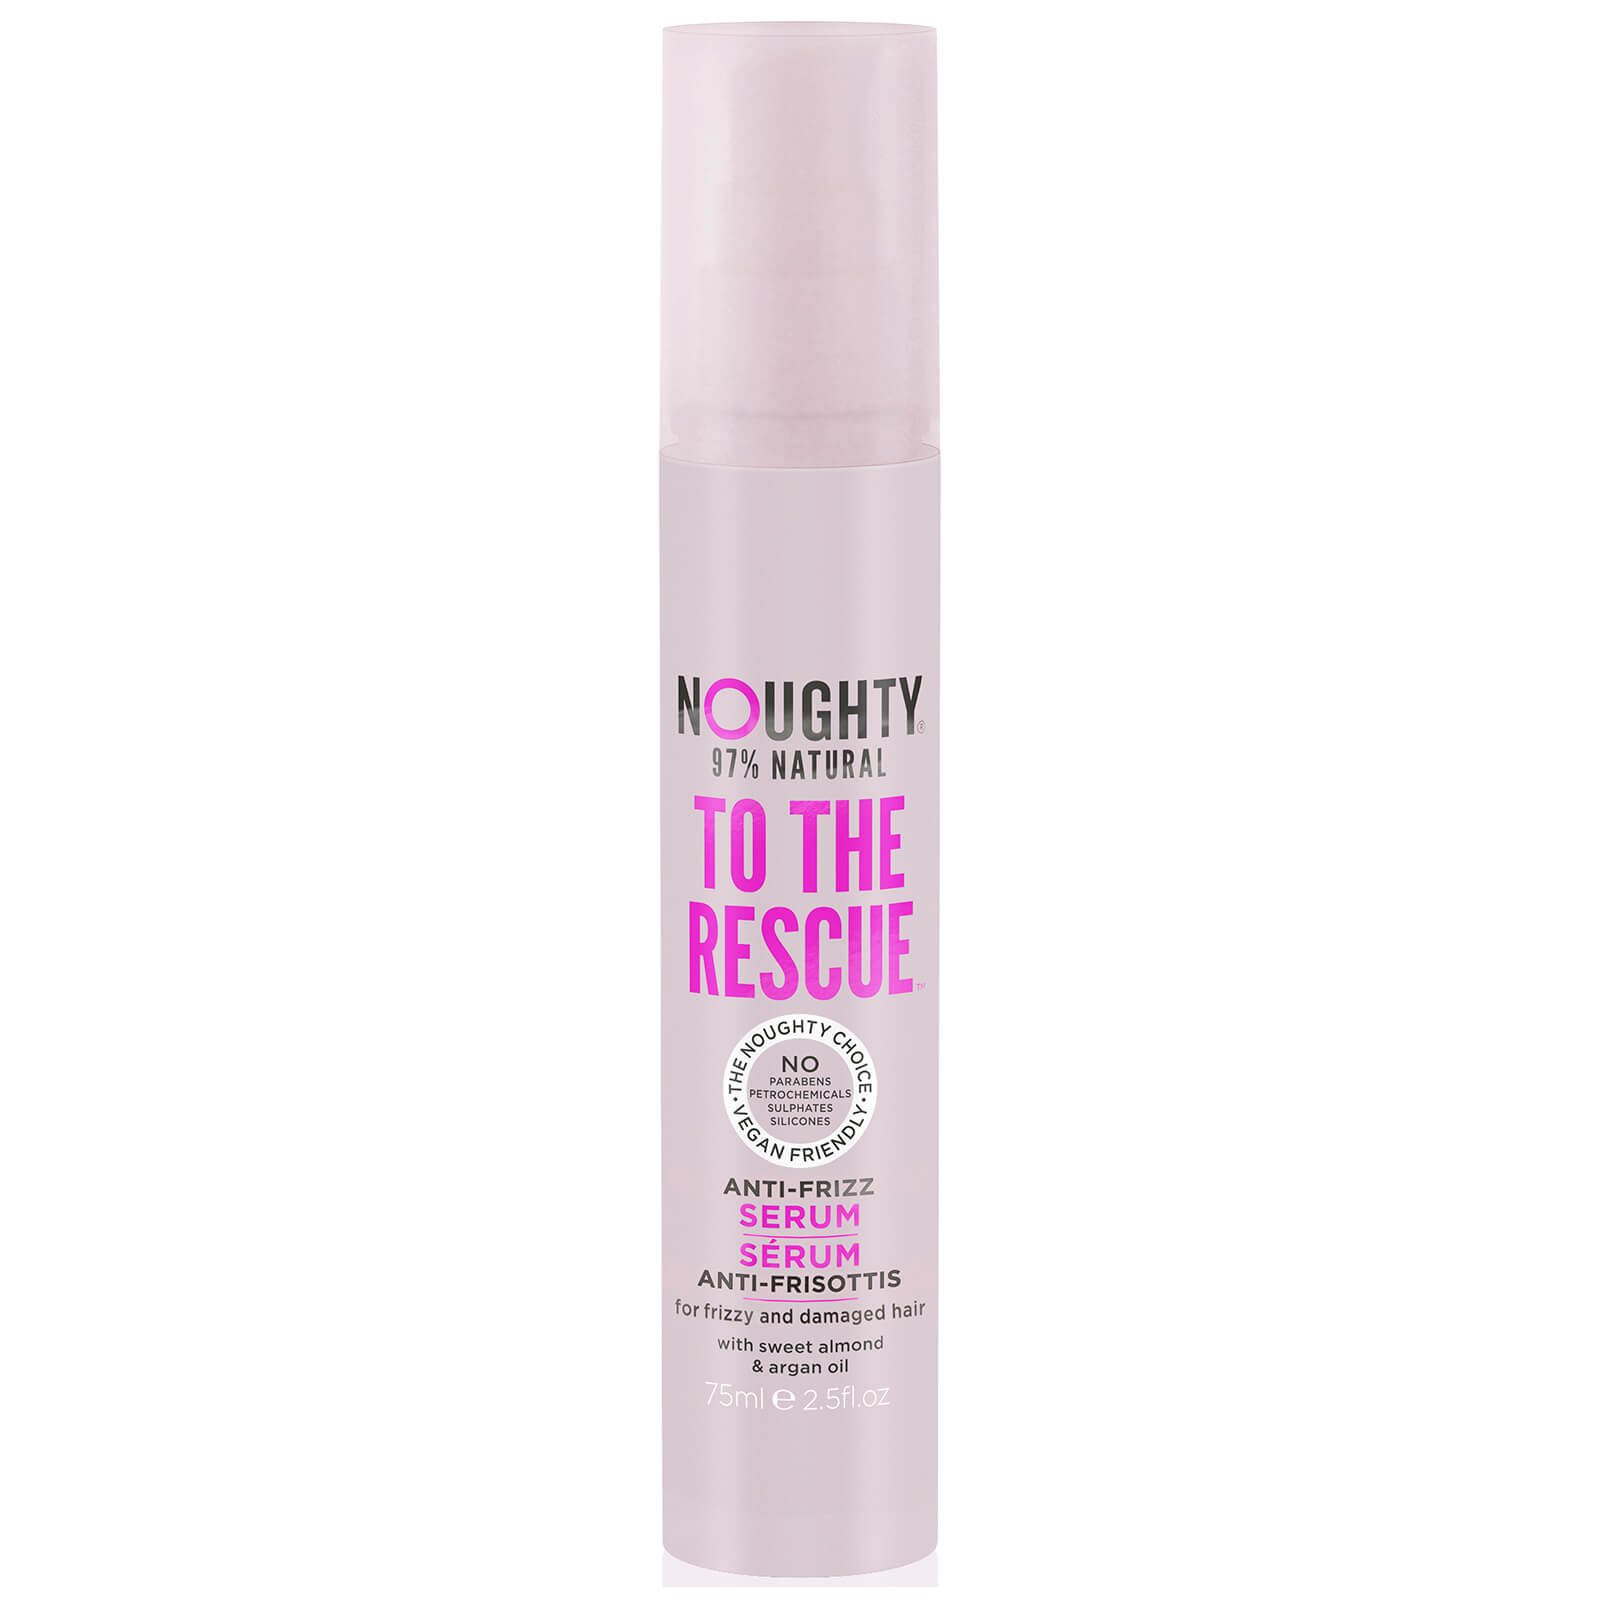 Noughty To the Rescue Anti-Frizz Serum 75ml | Buy Online At RY